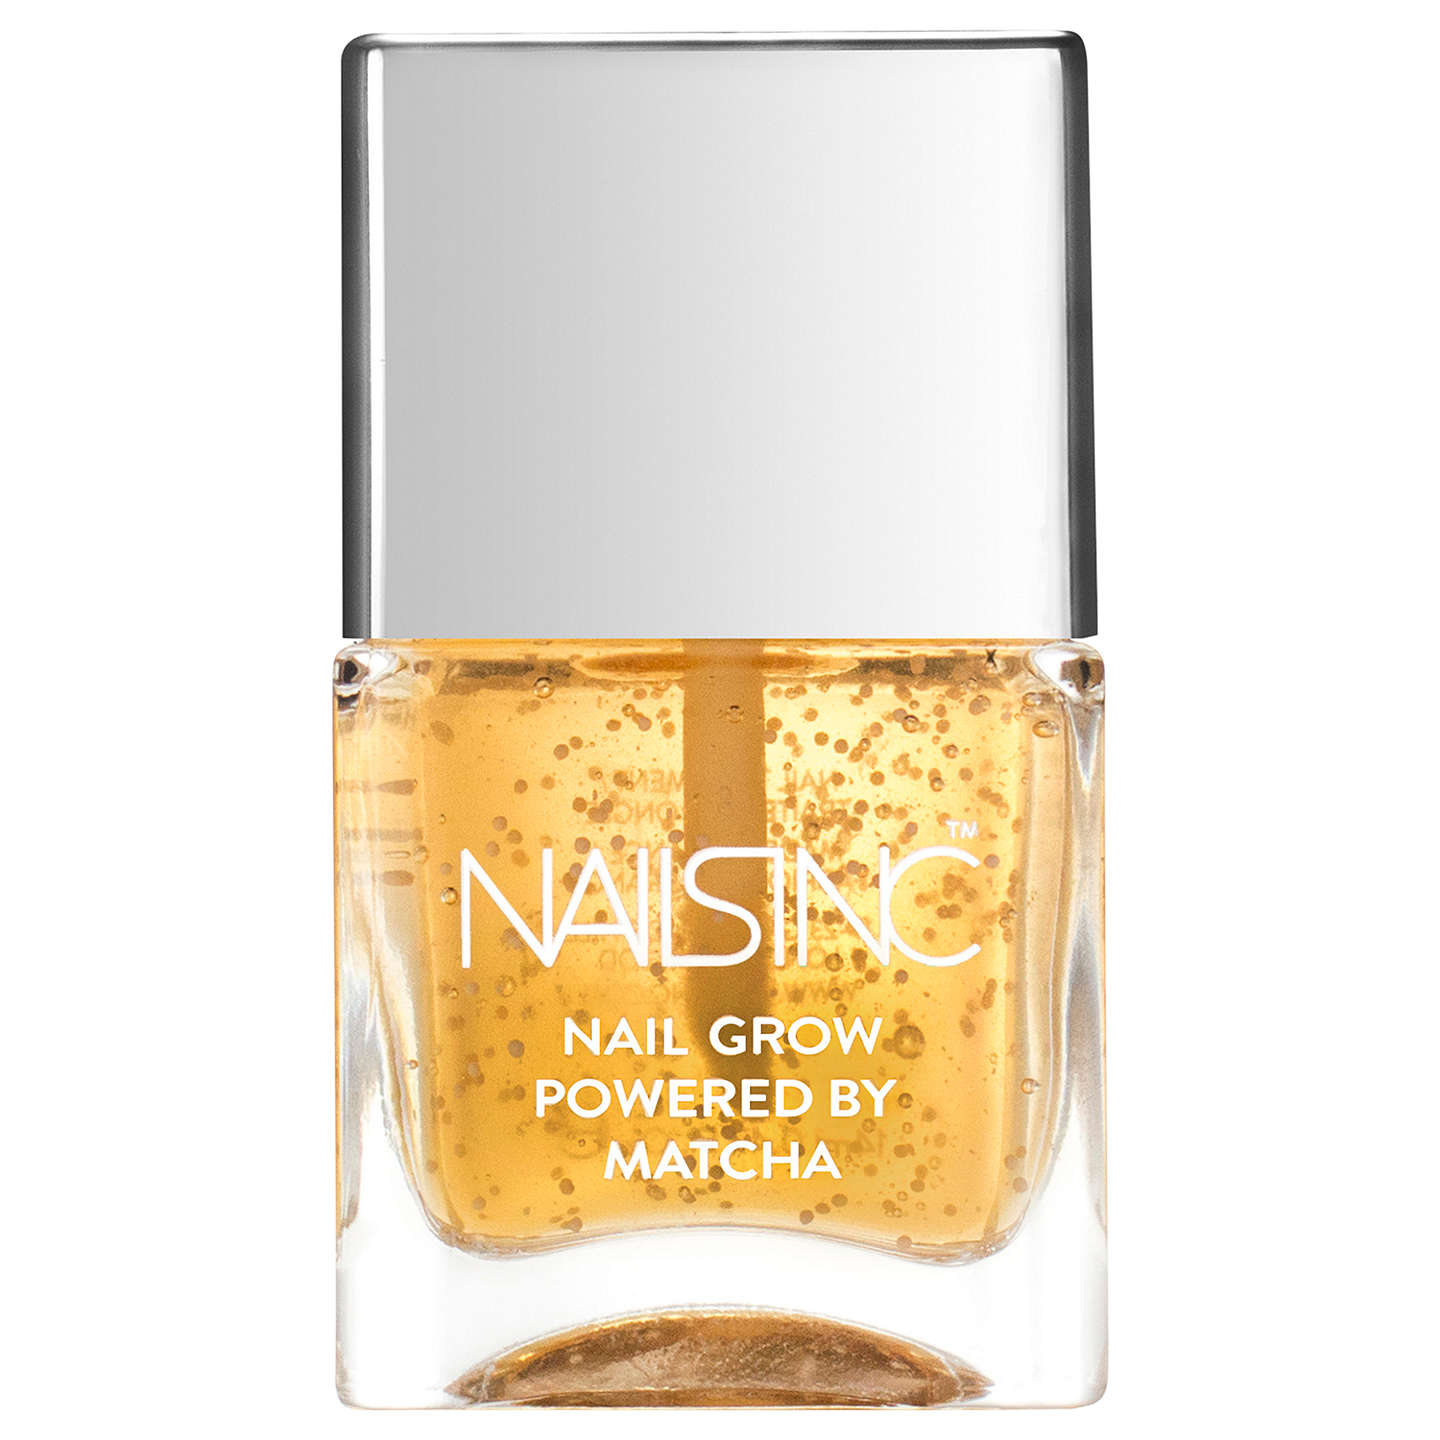 Nails Inc Nail Growth Treatment, 14ml at John Lewis